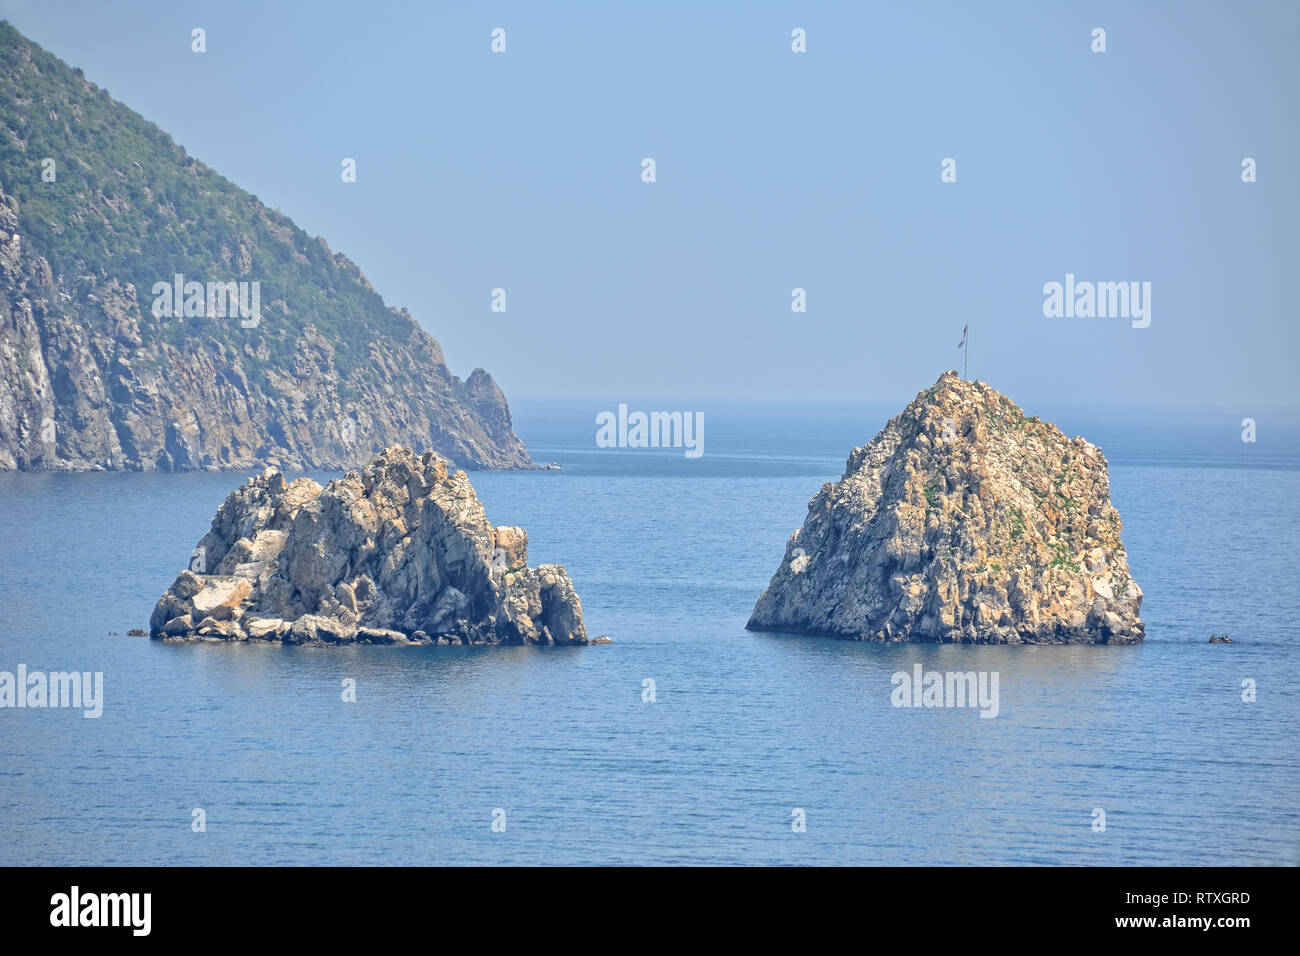 = Adalary Rocks in Gurzuf Bay =  View from a guest house in Gurzuf on the famous rocks Adalary (Two Twin-Cliffs) with an edge of mountain Au-Dag (Bear - Stock Image